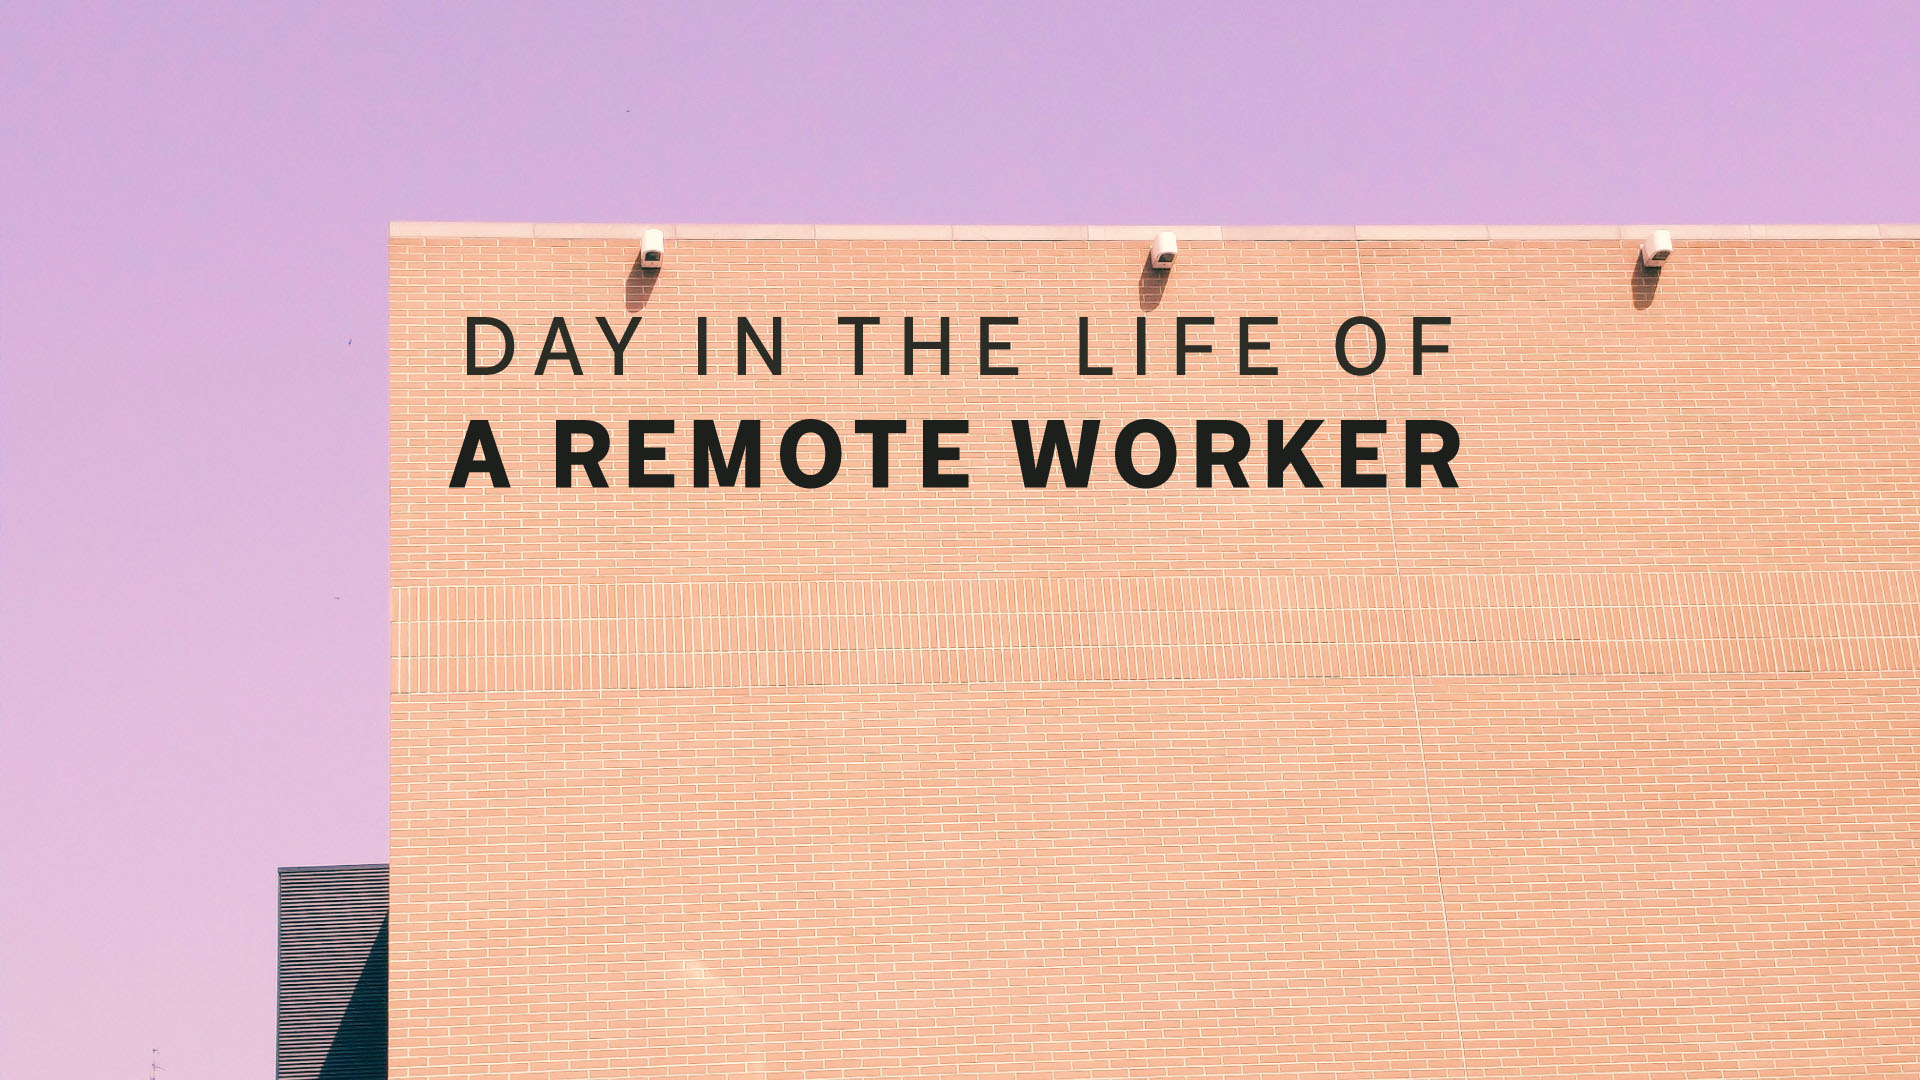 We Work Remotely day in the life interview with Scott Mathson